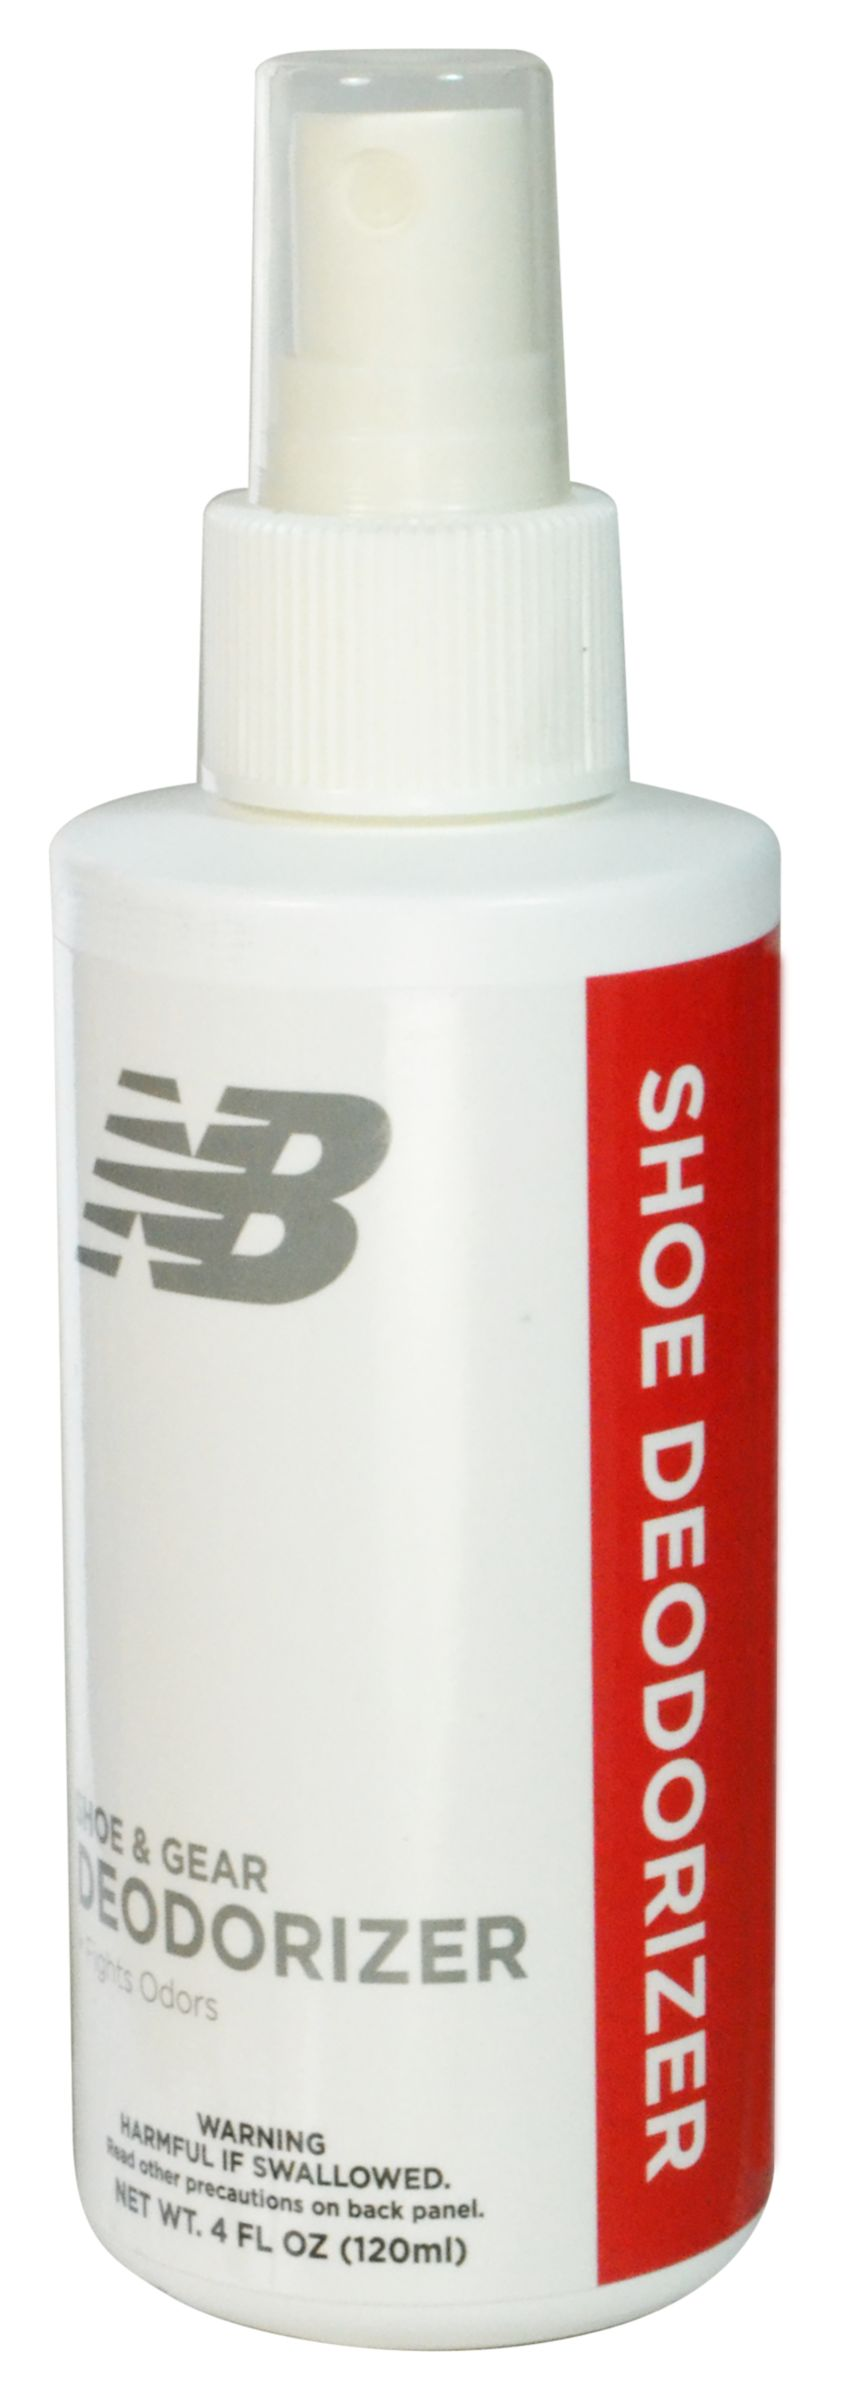 New Balance Shoe Deodorizer